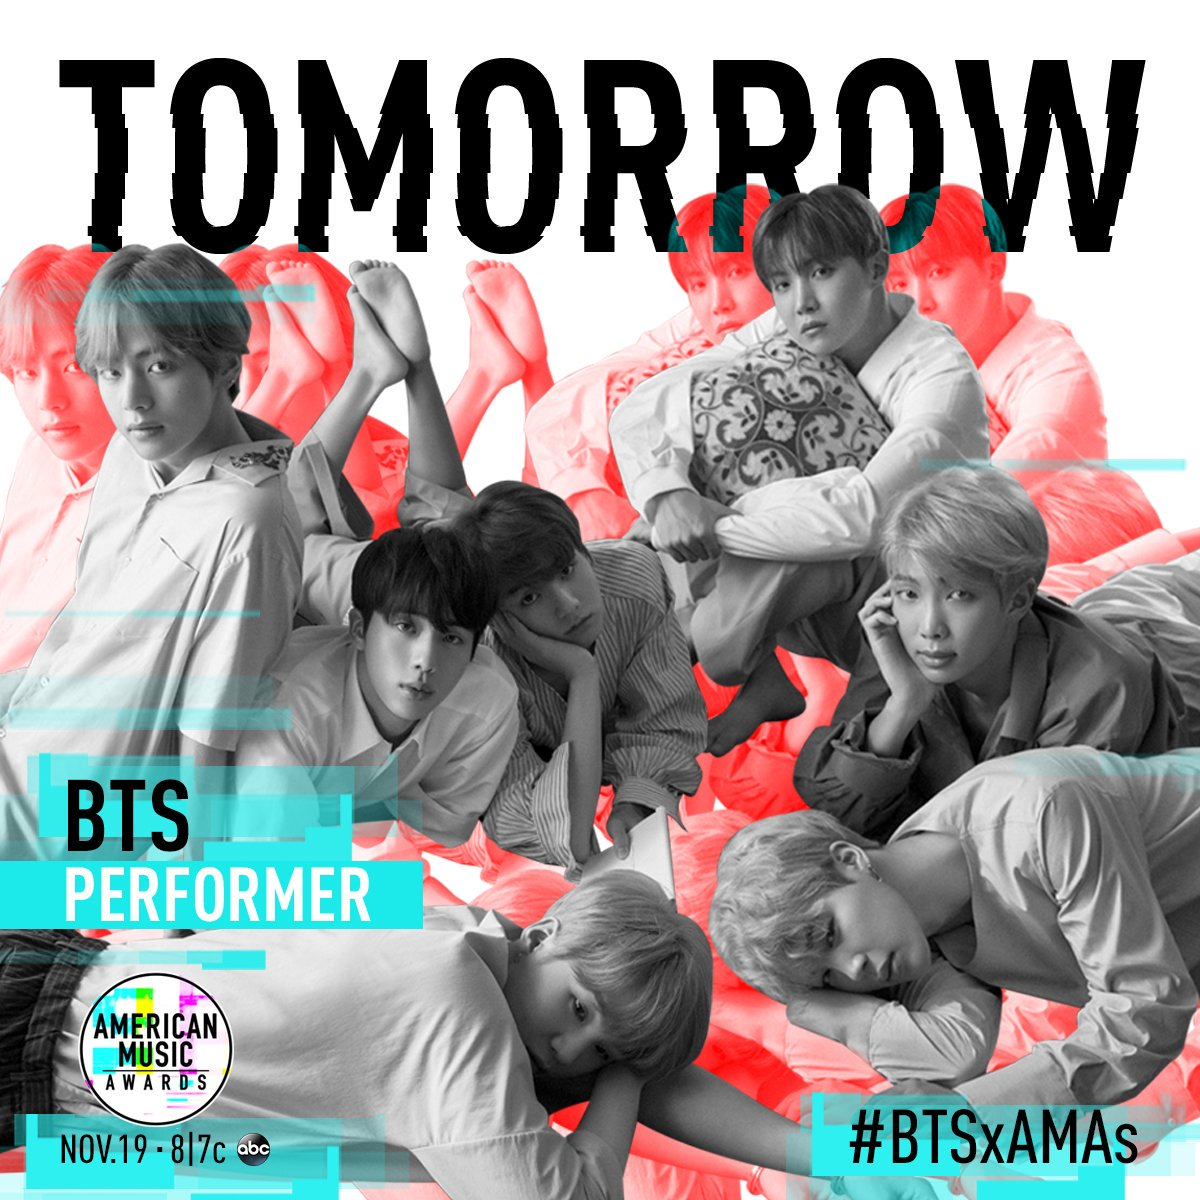 """Just wrapped rehearsals for the @AMAs! Make sure to watch us perform """"DNA"""" TOMORROW night at 8/7c on ABC! #BTSxAMAs"""